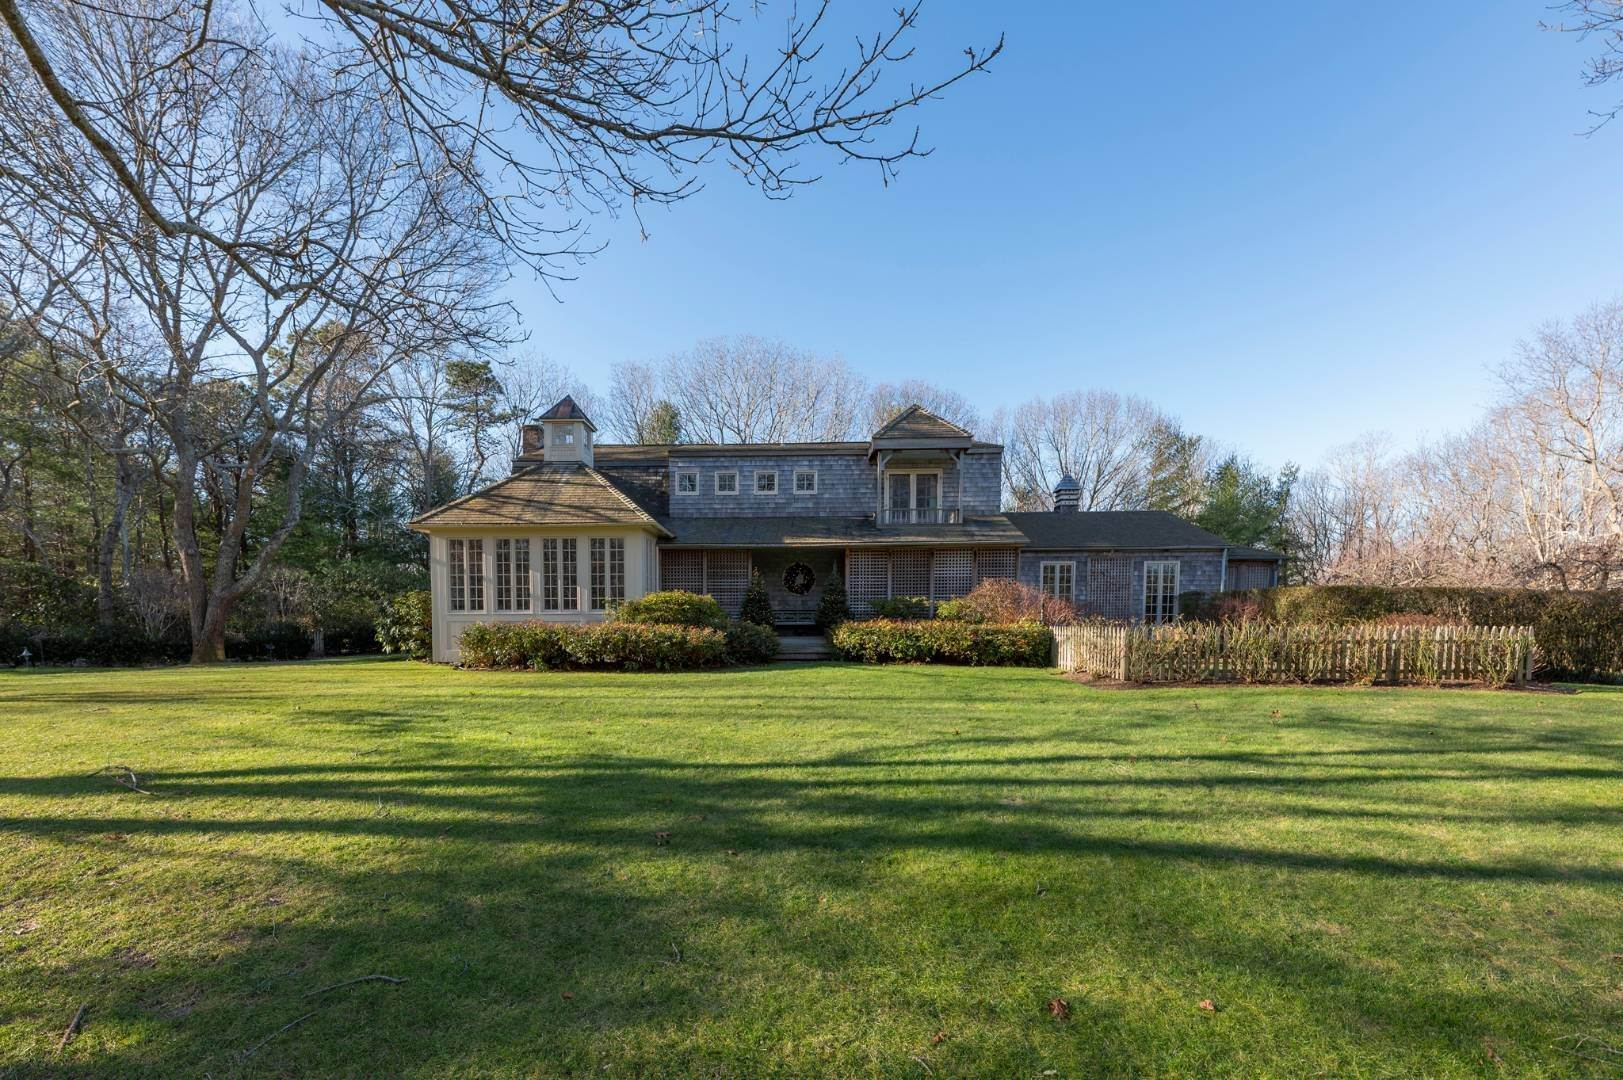 Single Family Home for Sale at Expansive Sagaponack Home With Room For Pool And Tennis 788 Sagg Road, Sagaponack, NY 11962